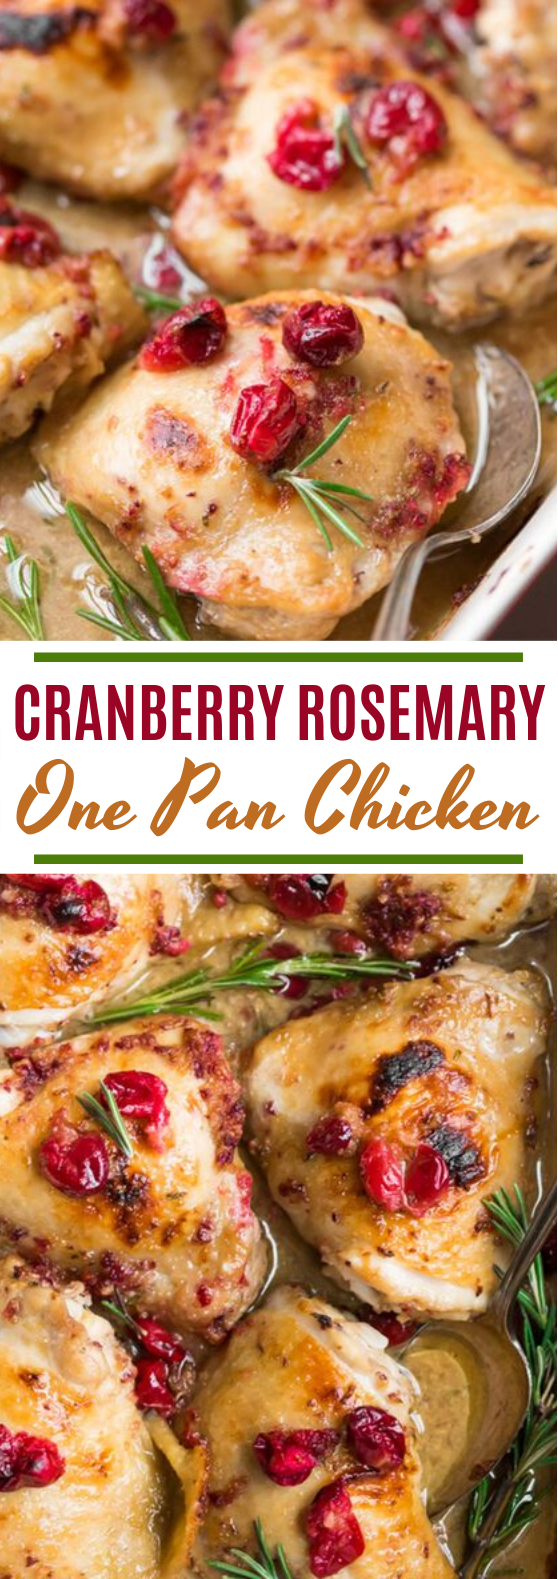 Cranberry Rosemary One Pan Chicken (Paleo, Whole30 Option) #dinner #chicken #healthy #christmas #recipes